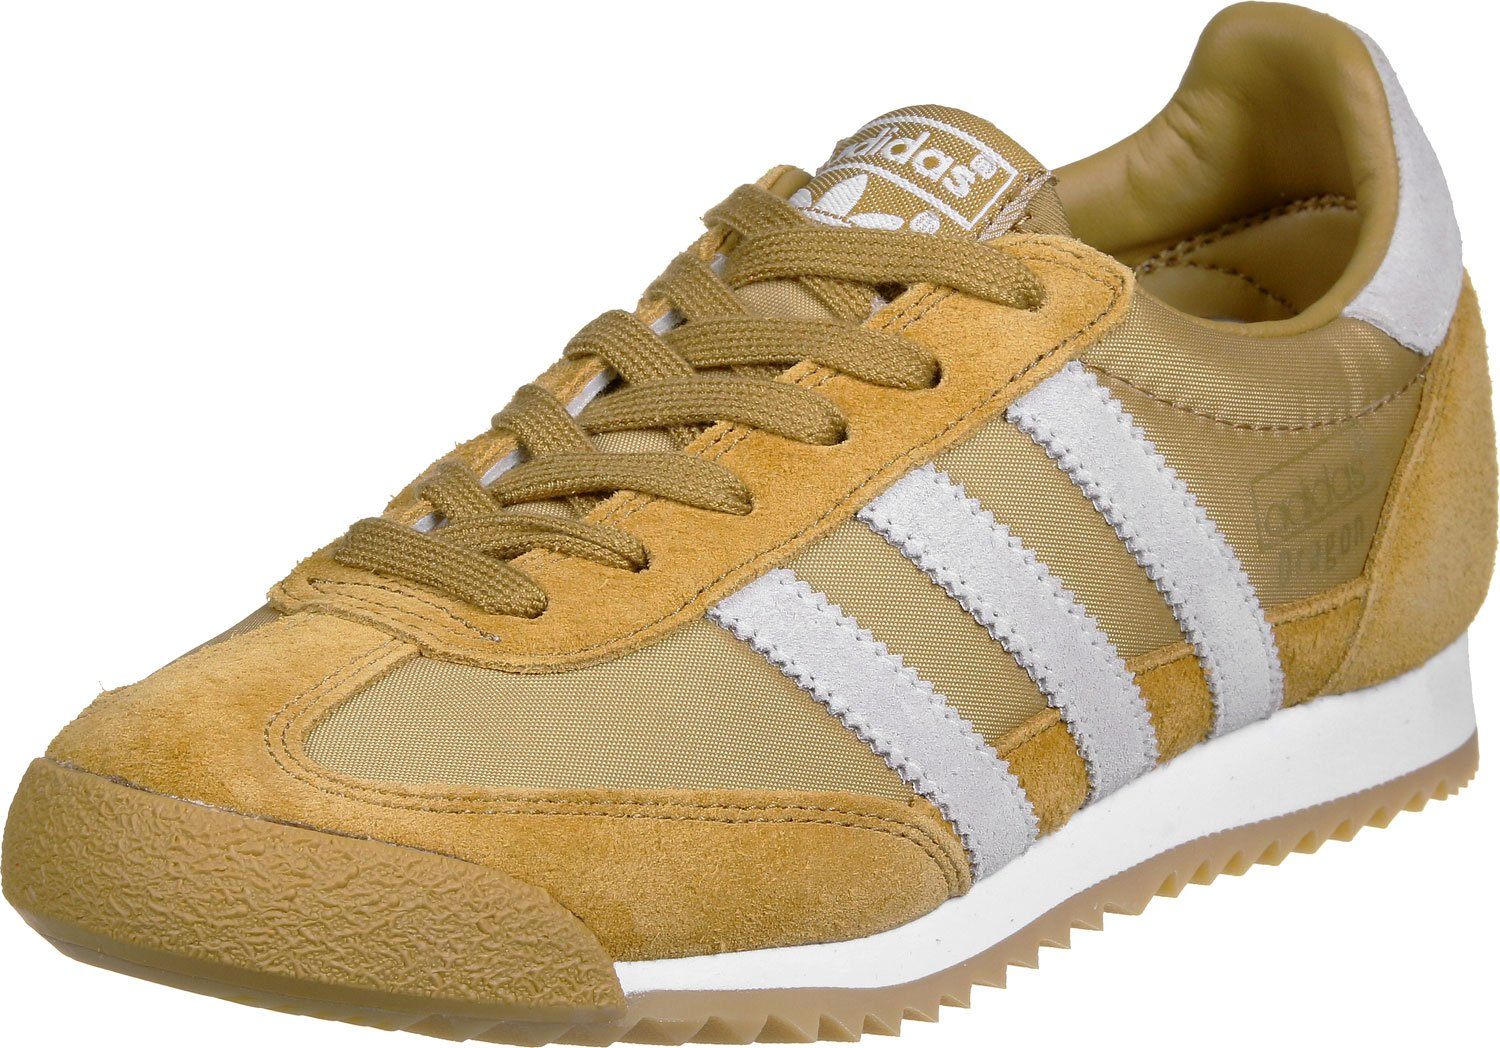 Adidas Dragon OG BB1262 Mens Sneakers / Casual shoes / Trainers ...